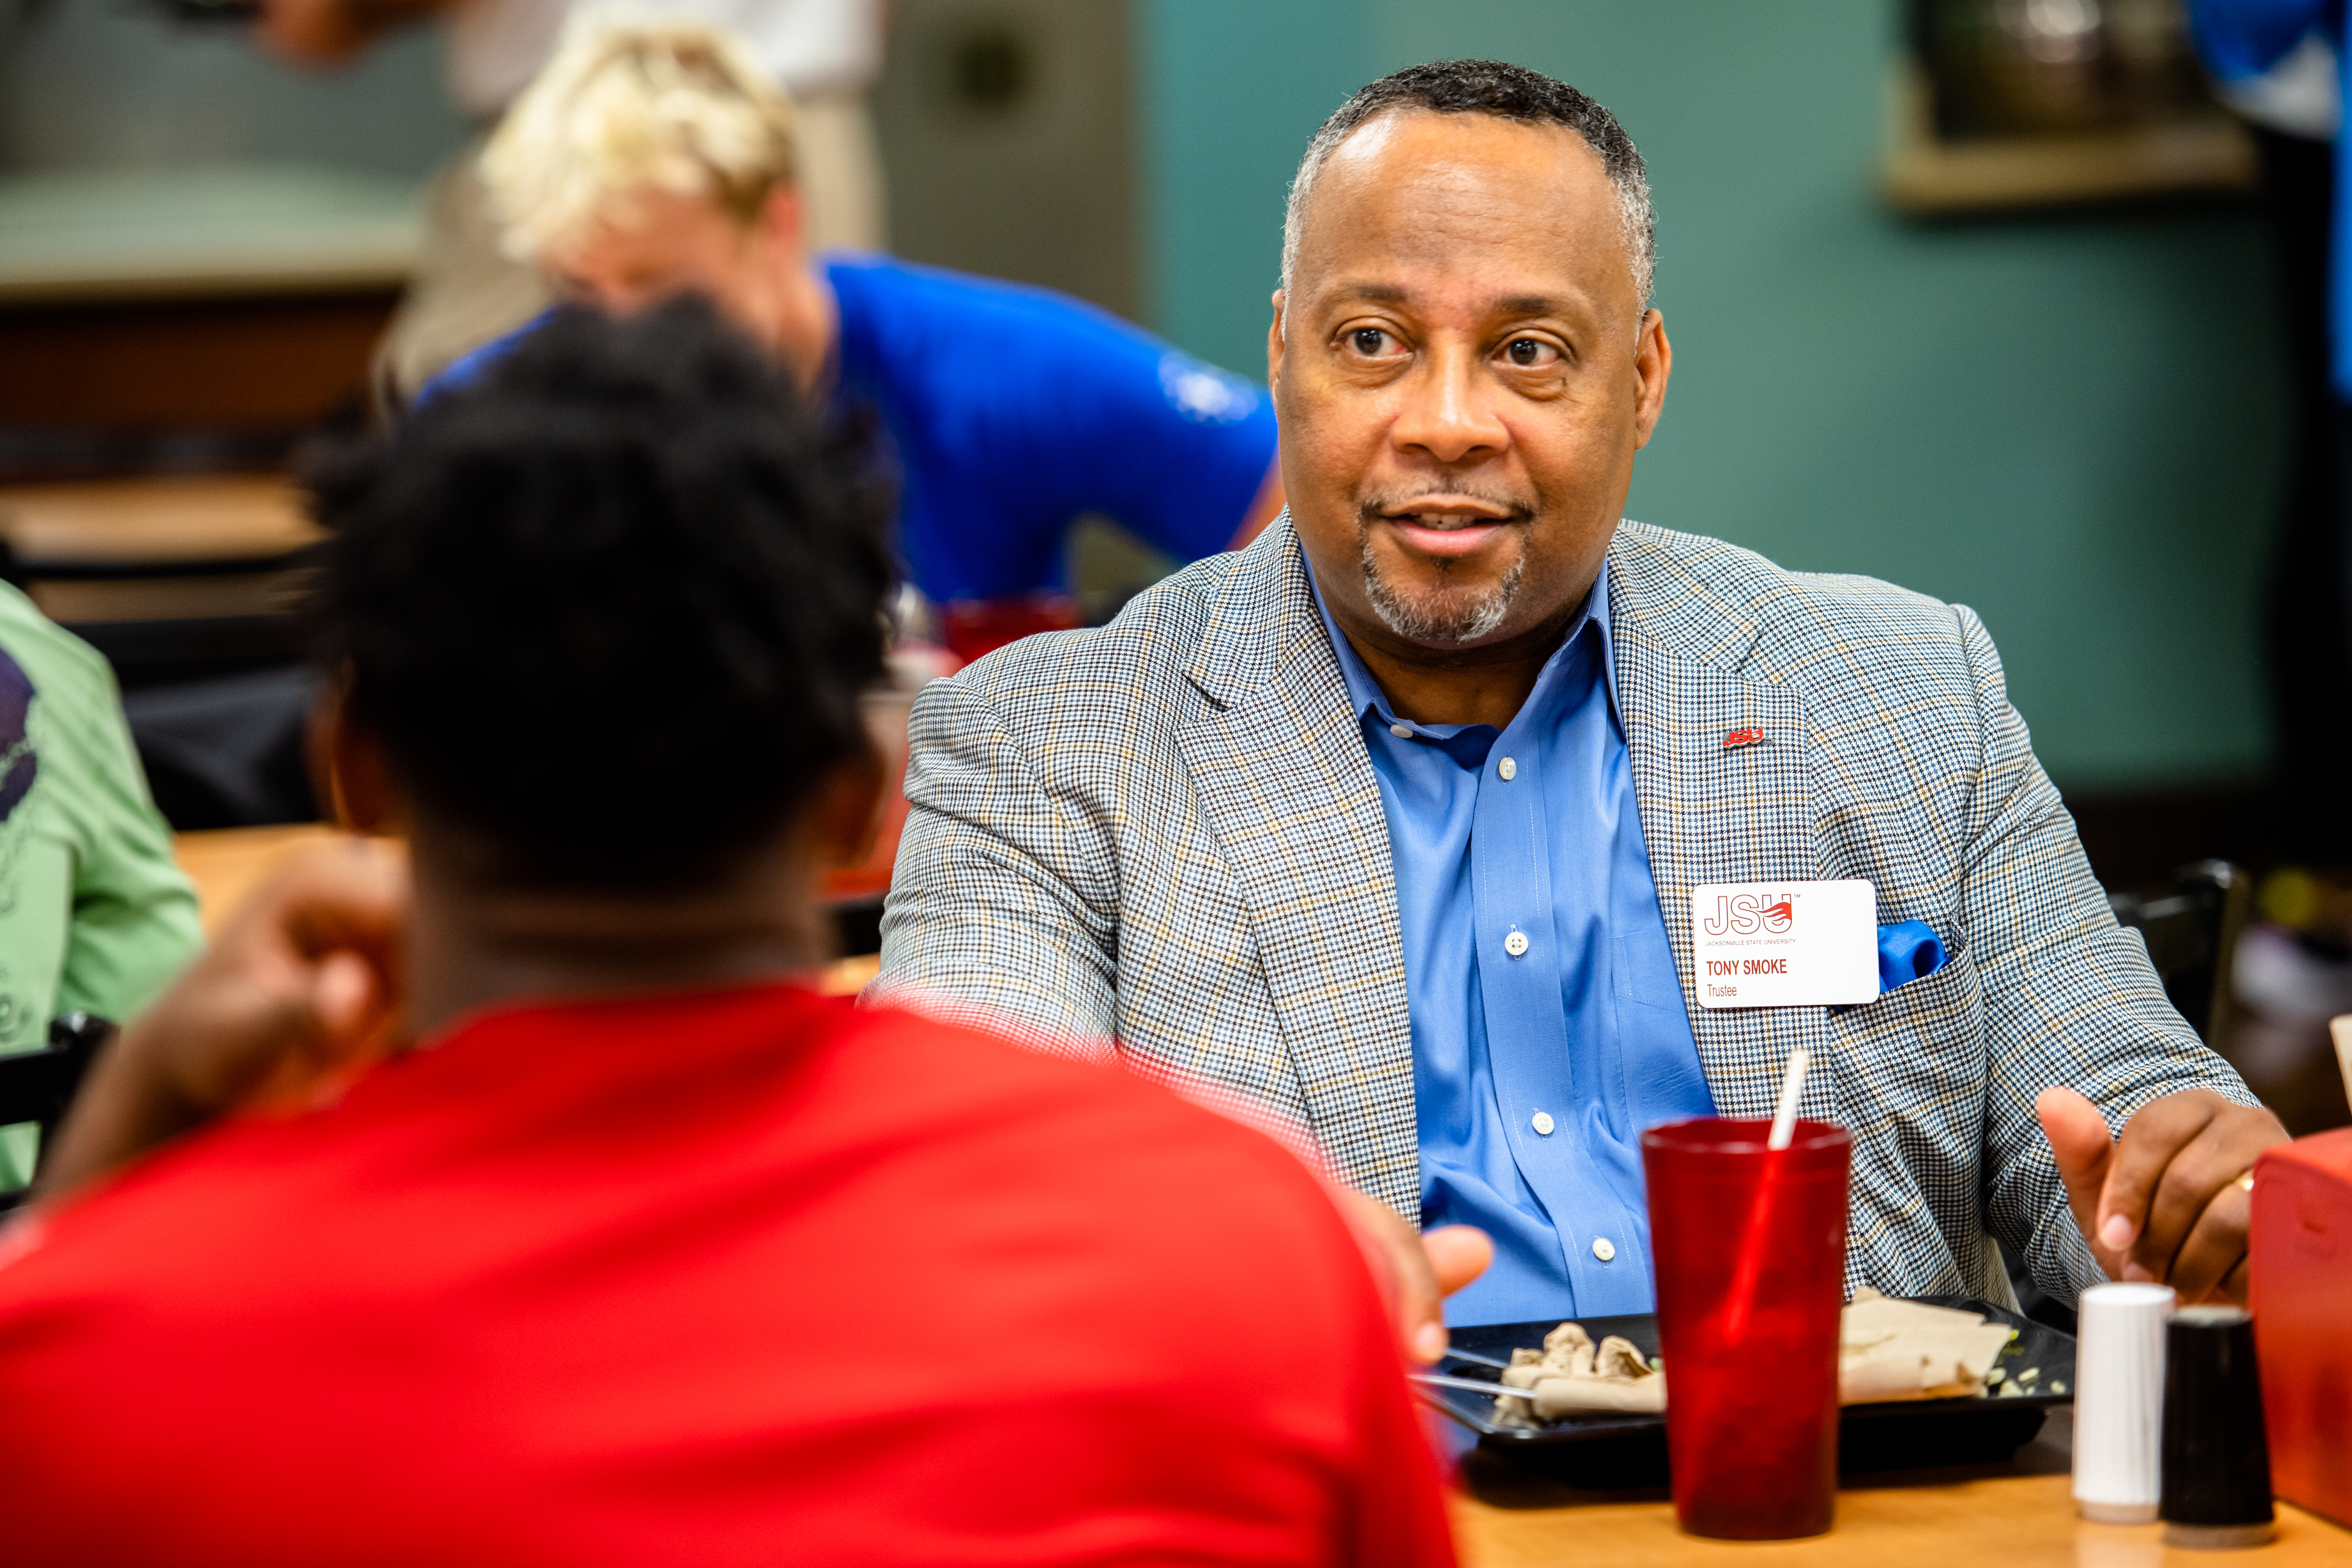 Tony Smoke, pictured right, a JSU trustee, gathered with other trustees in the Jack Hopper Dining Hall to meet with students. (Grace Cockrell/JSU)